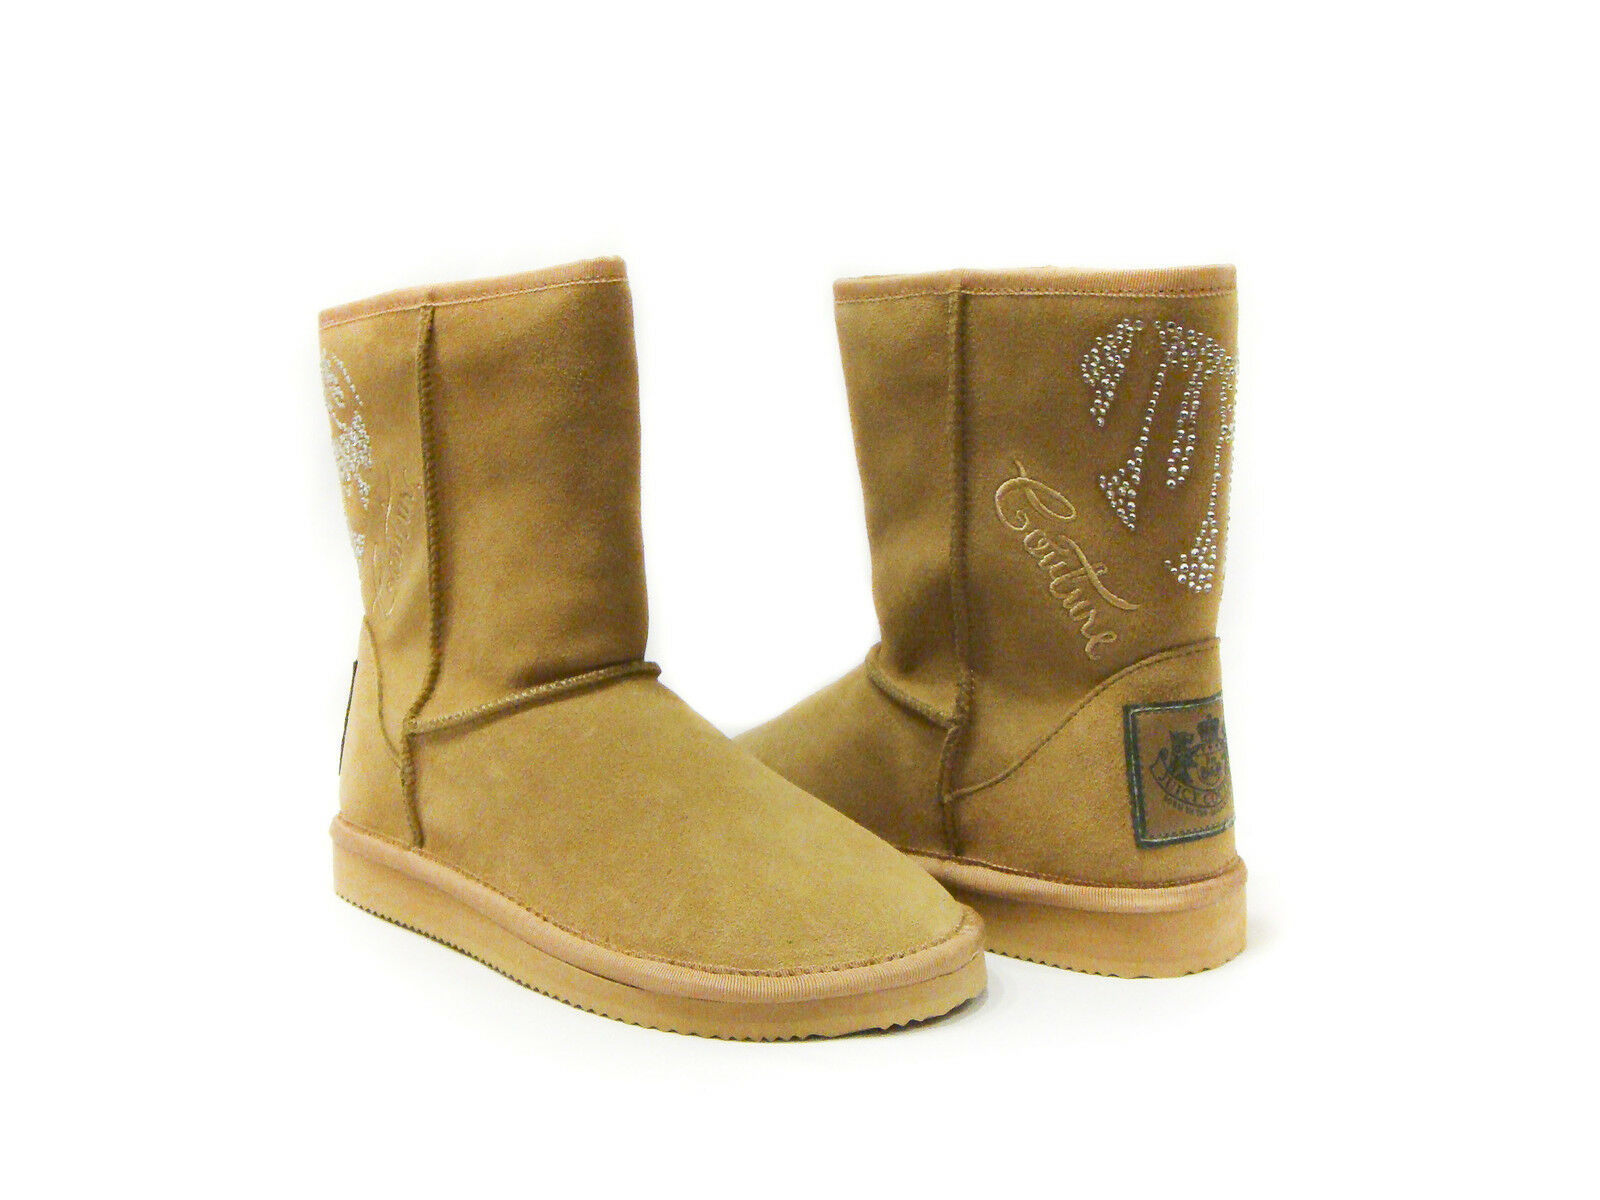 NEW in Box Juicy Couture Crystals Bling Cafe Camel Suede Orion Cozy Stivali